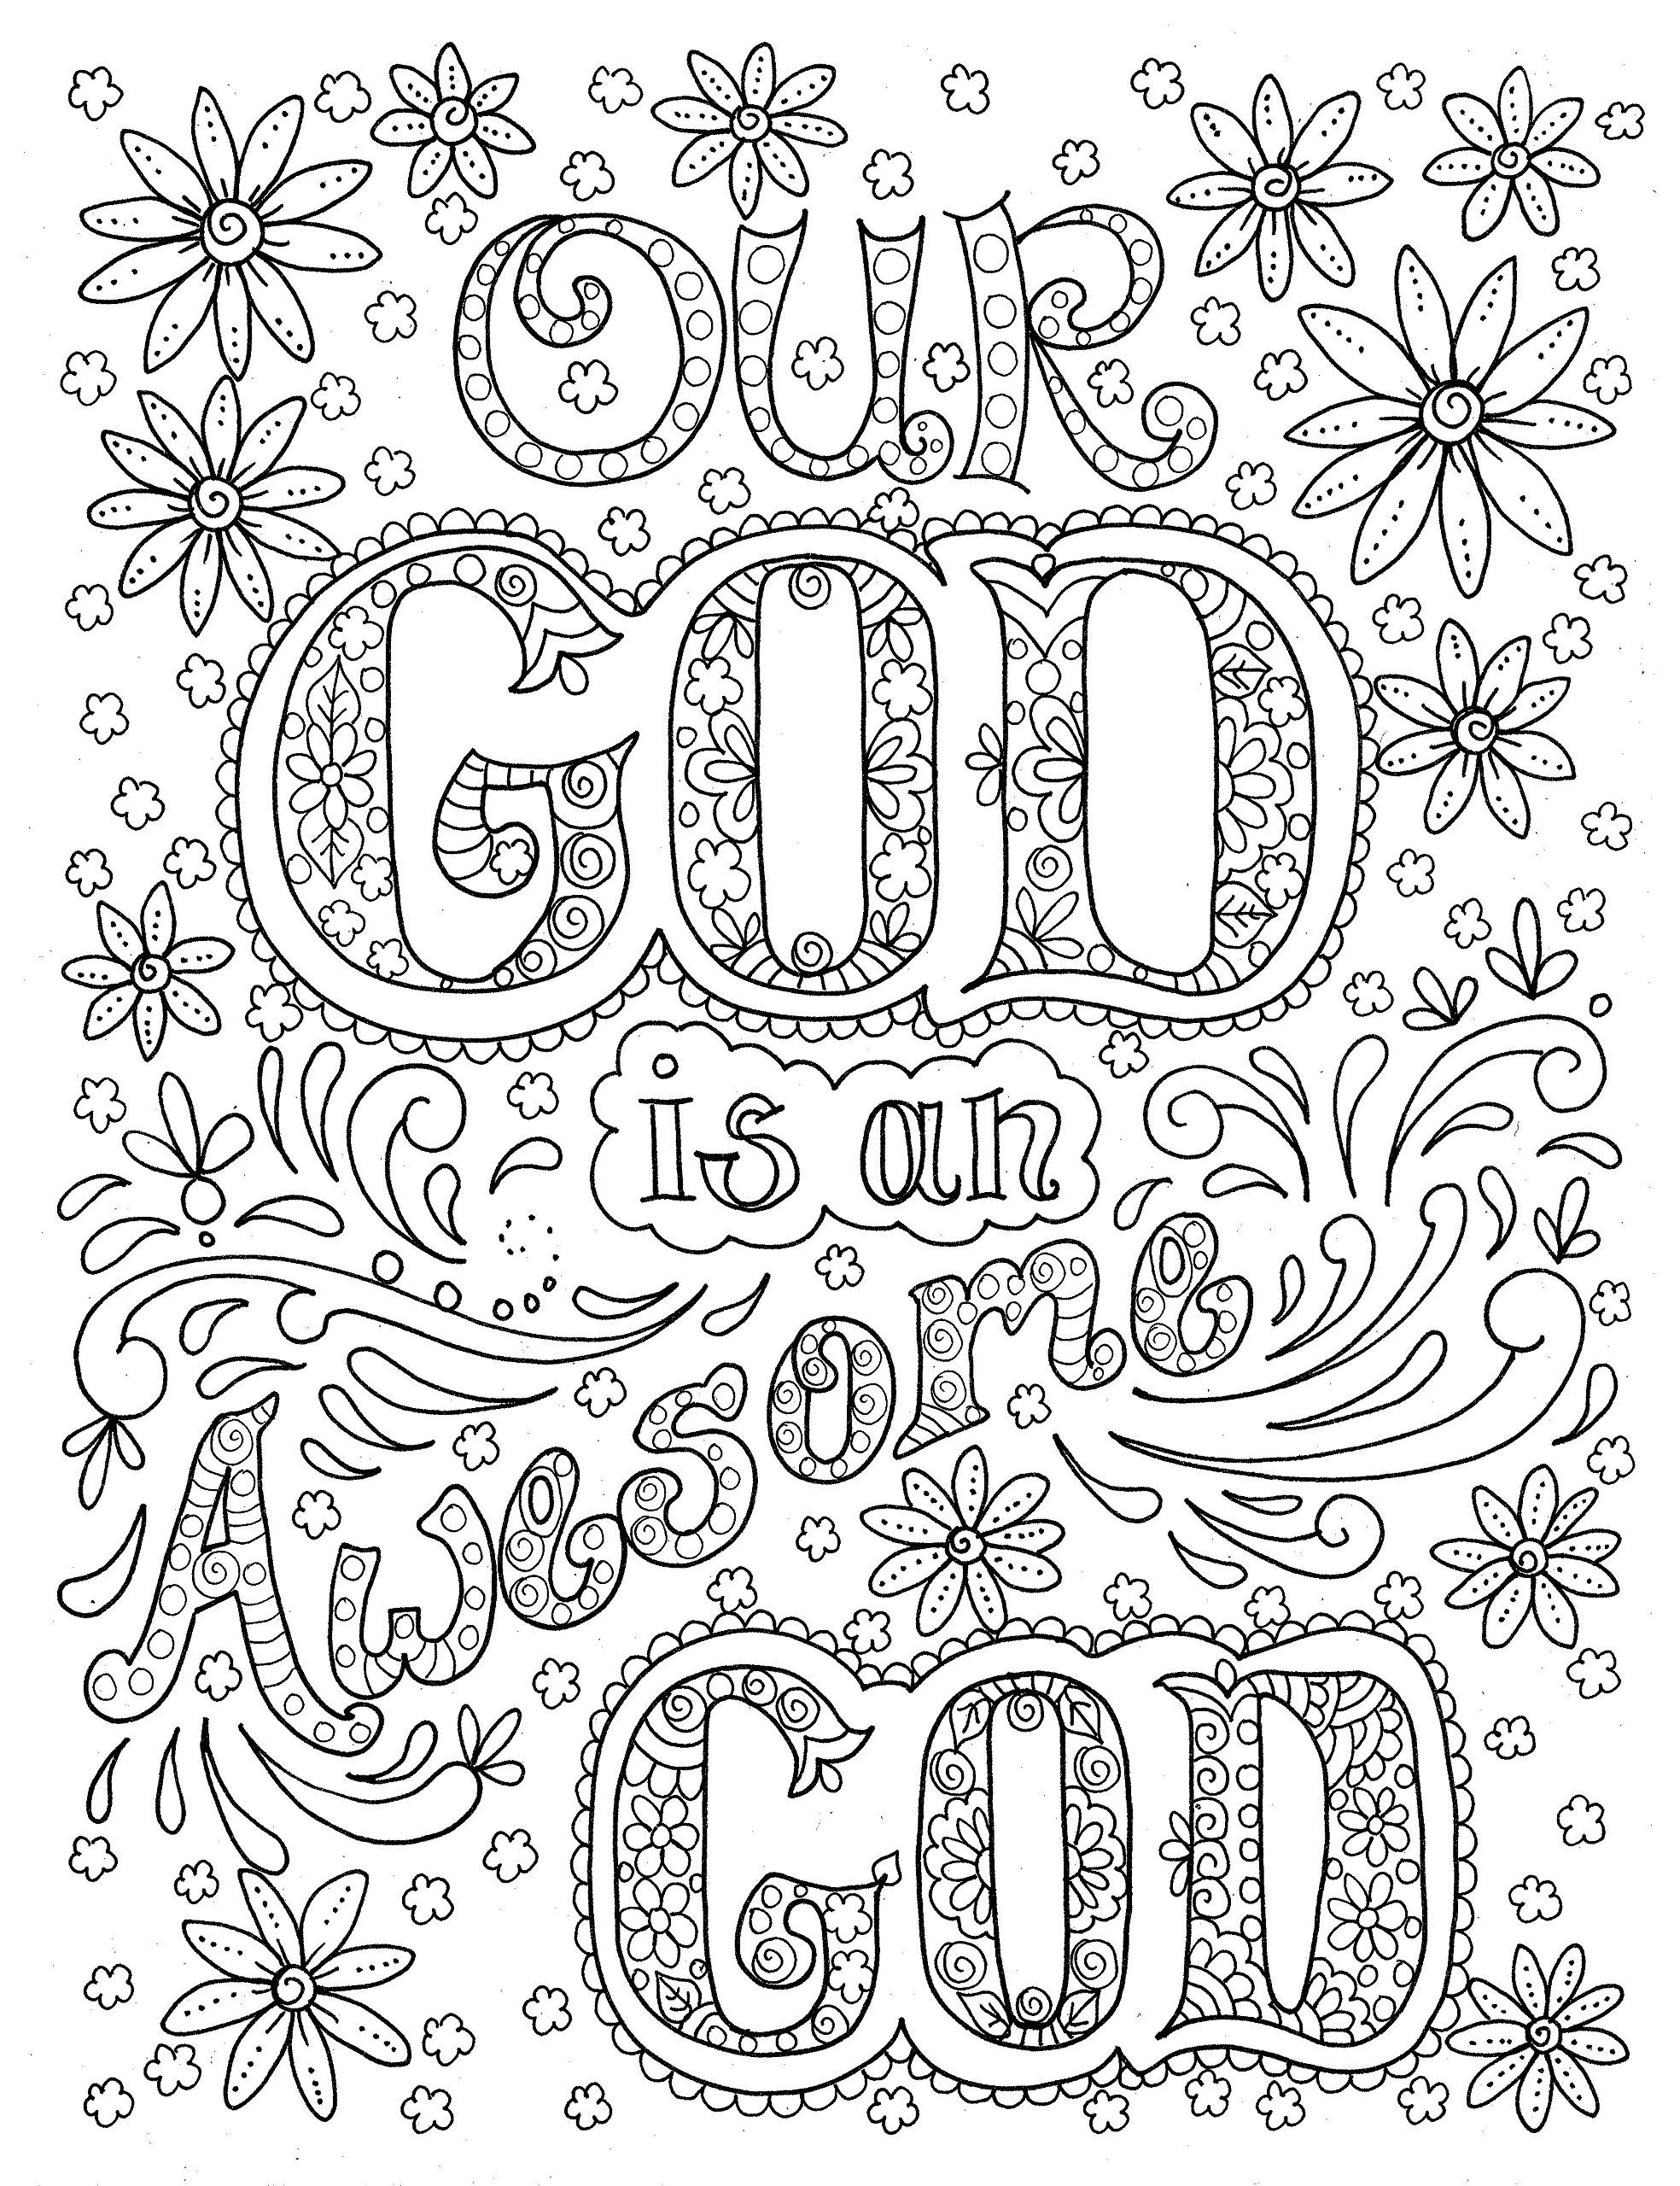 Pray adult religious coloring page i want to do this for my prayer journal cover catholic cuties bible coloring pages free coloring pages coloring